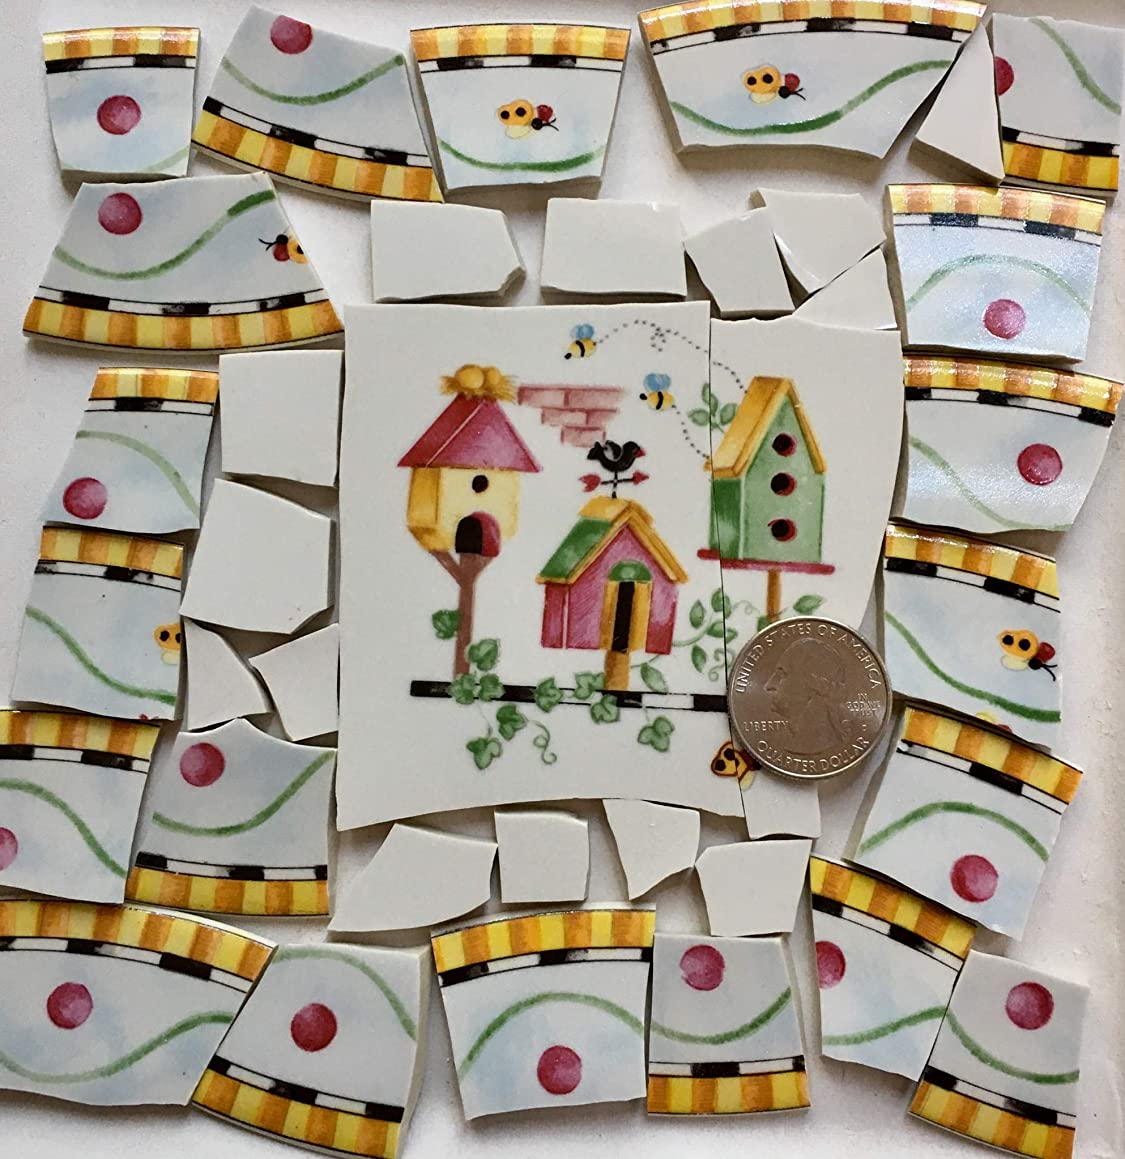 Broken China Mosaic Tile Art Supply for Crafts ~ Coventry Pentelopes Garden Birdhouse & Solid White Tiles (T#A056)